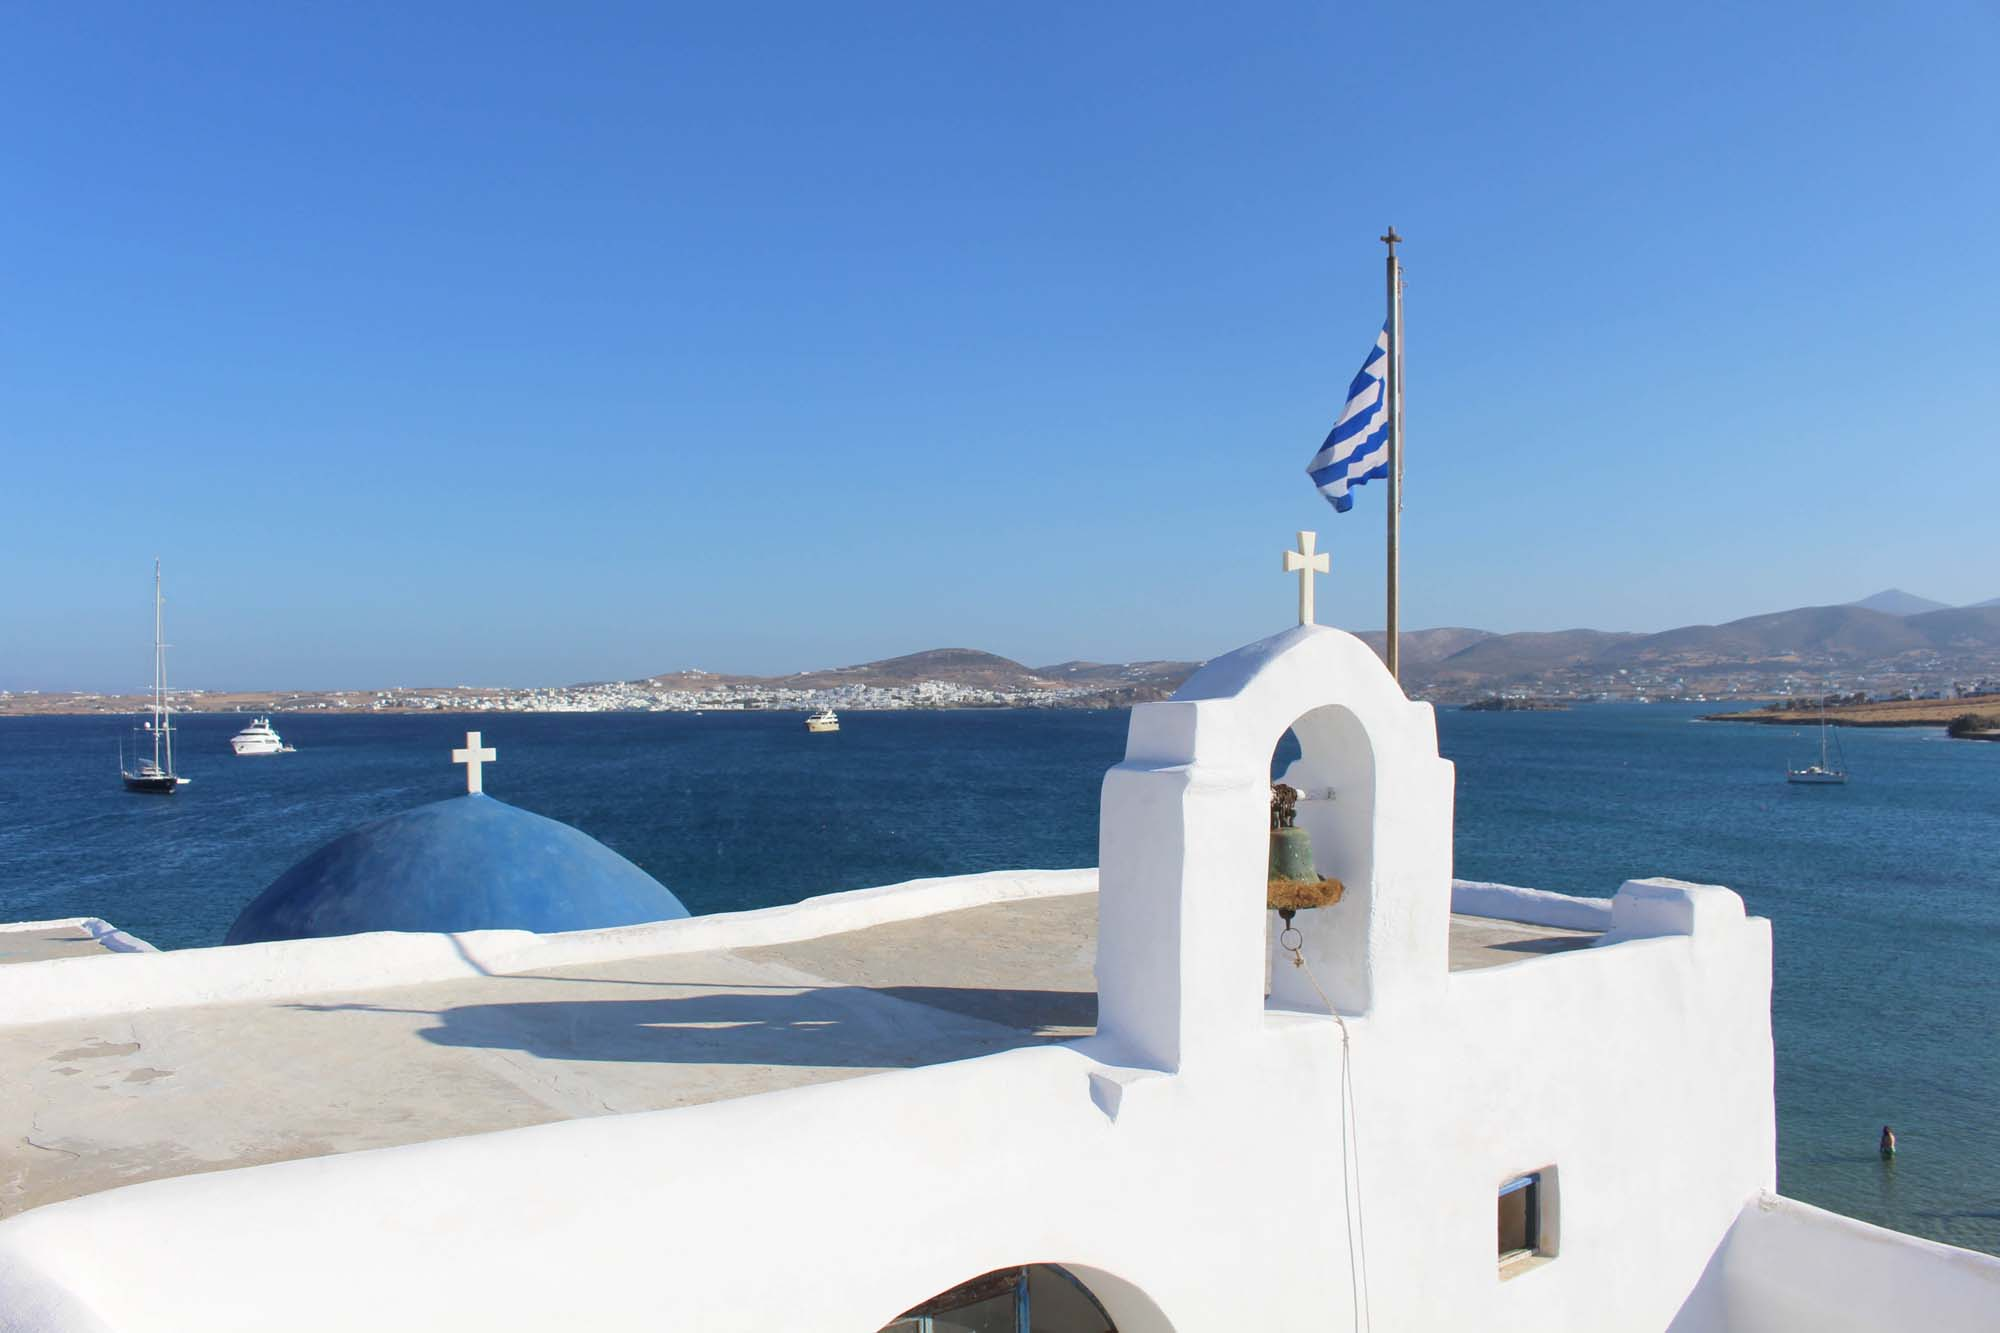 greece-paros-travel-linstantflo-32-sur-39